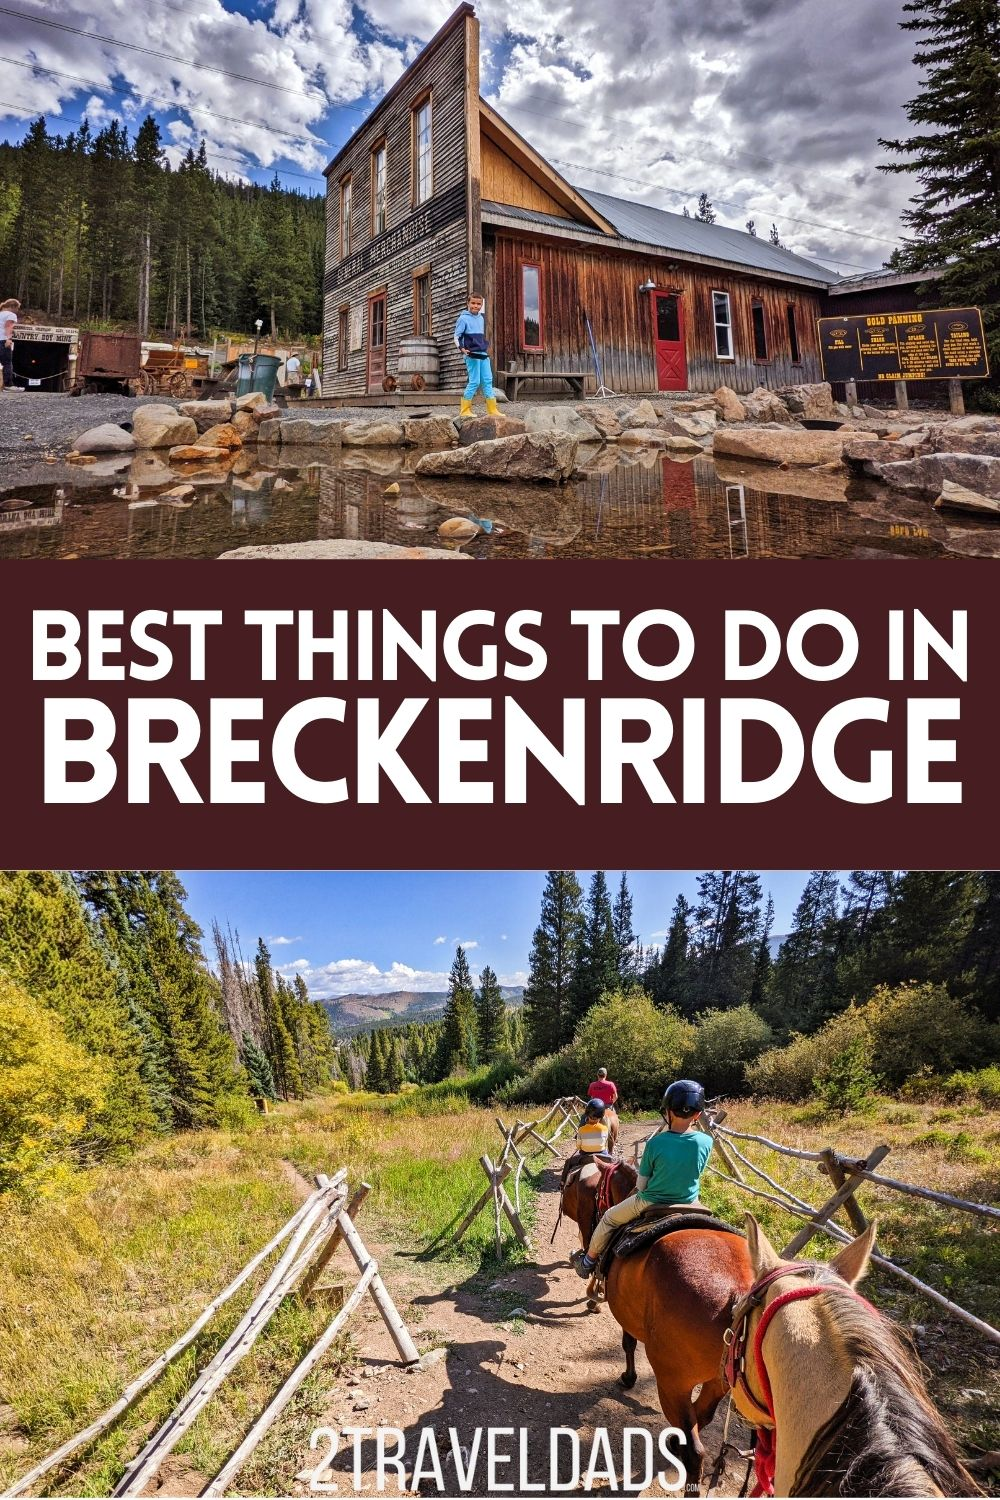 There are things to do in Breckenridge all year, not just during ski season. From epic hiking to a beautiful historic downtown, mine country to horseback riding, there are so many things to do for any season or type of traveler.